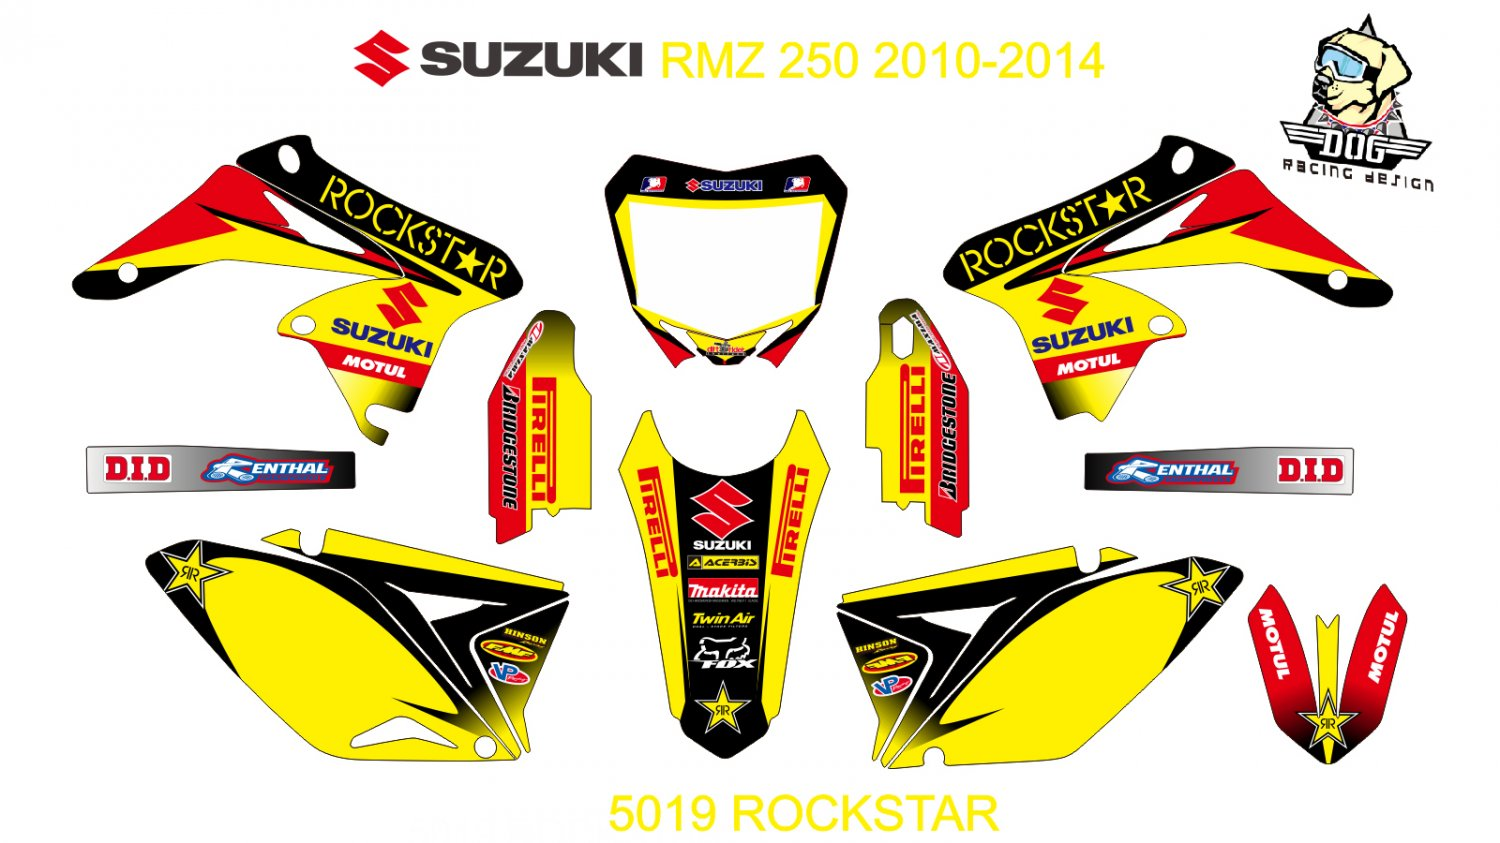 SUZUKI RMZ 250 2010-2014 GRAPHIC DECAL KIT CODE.5019